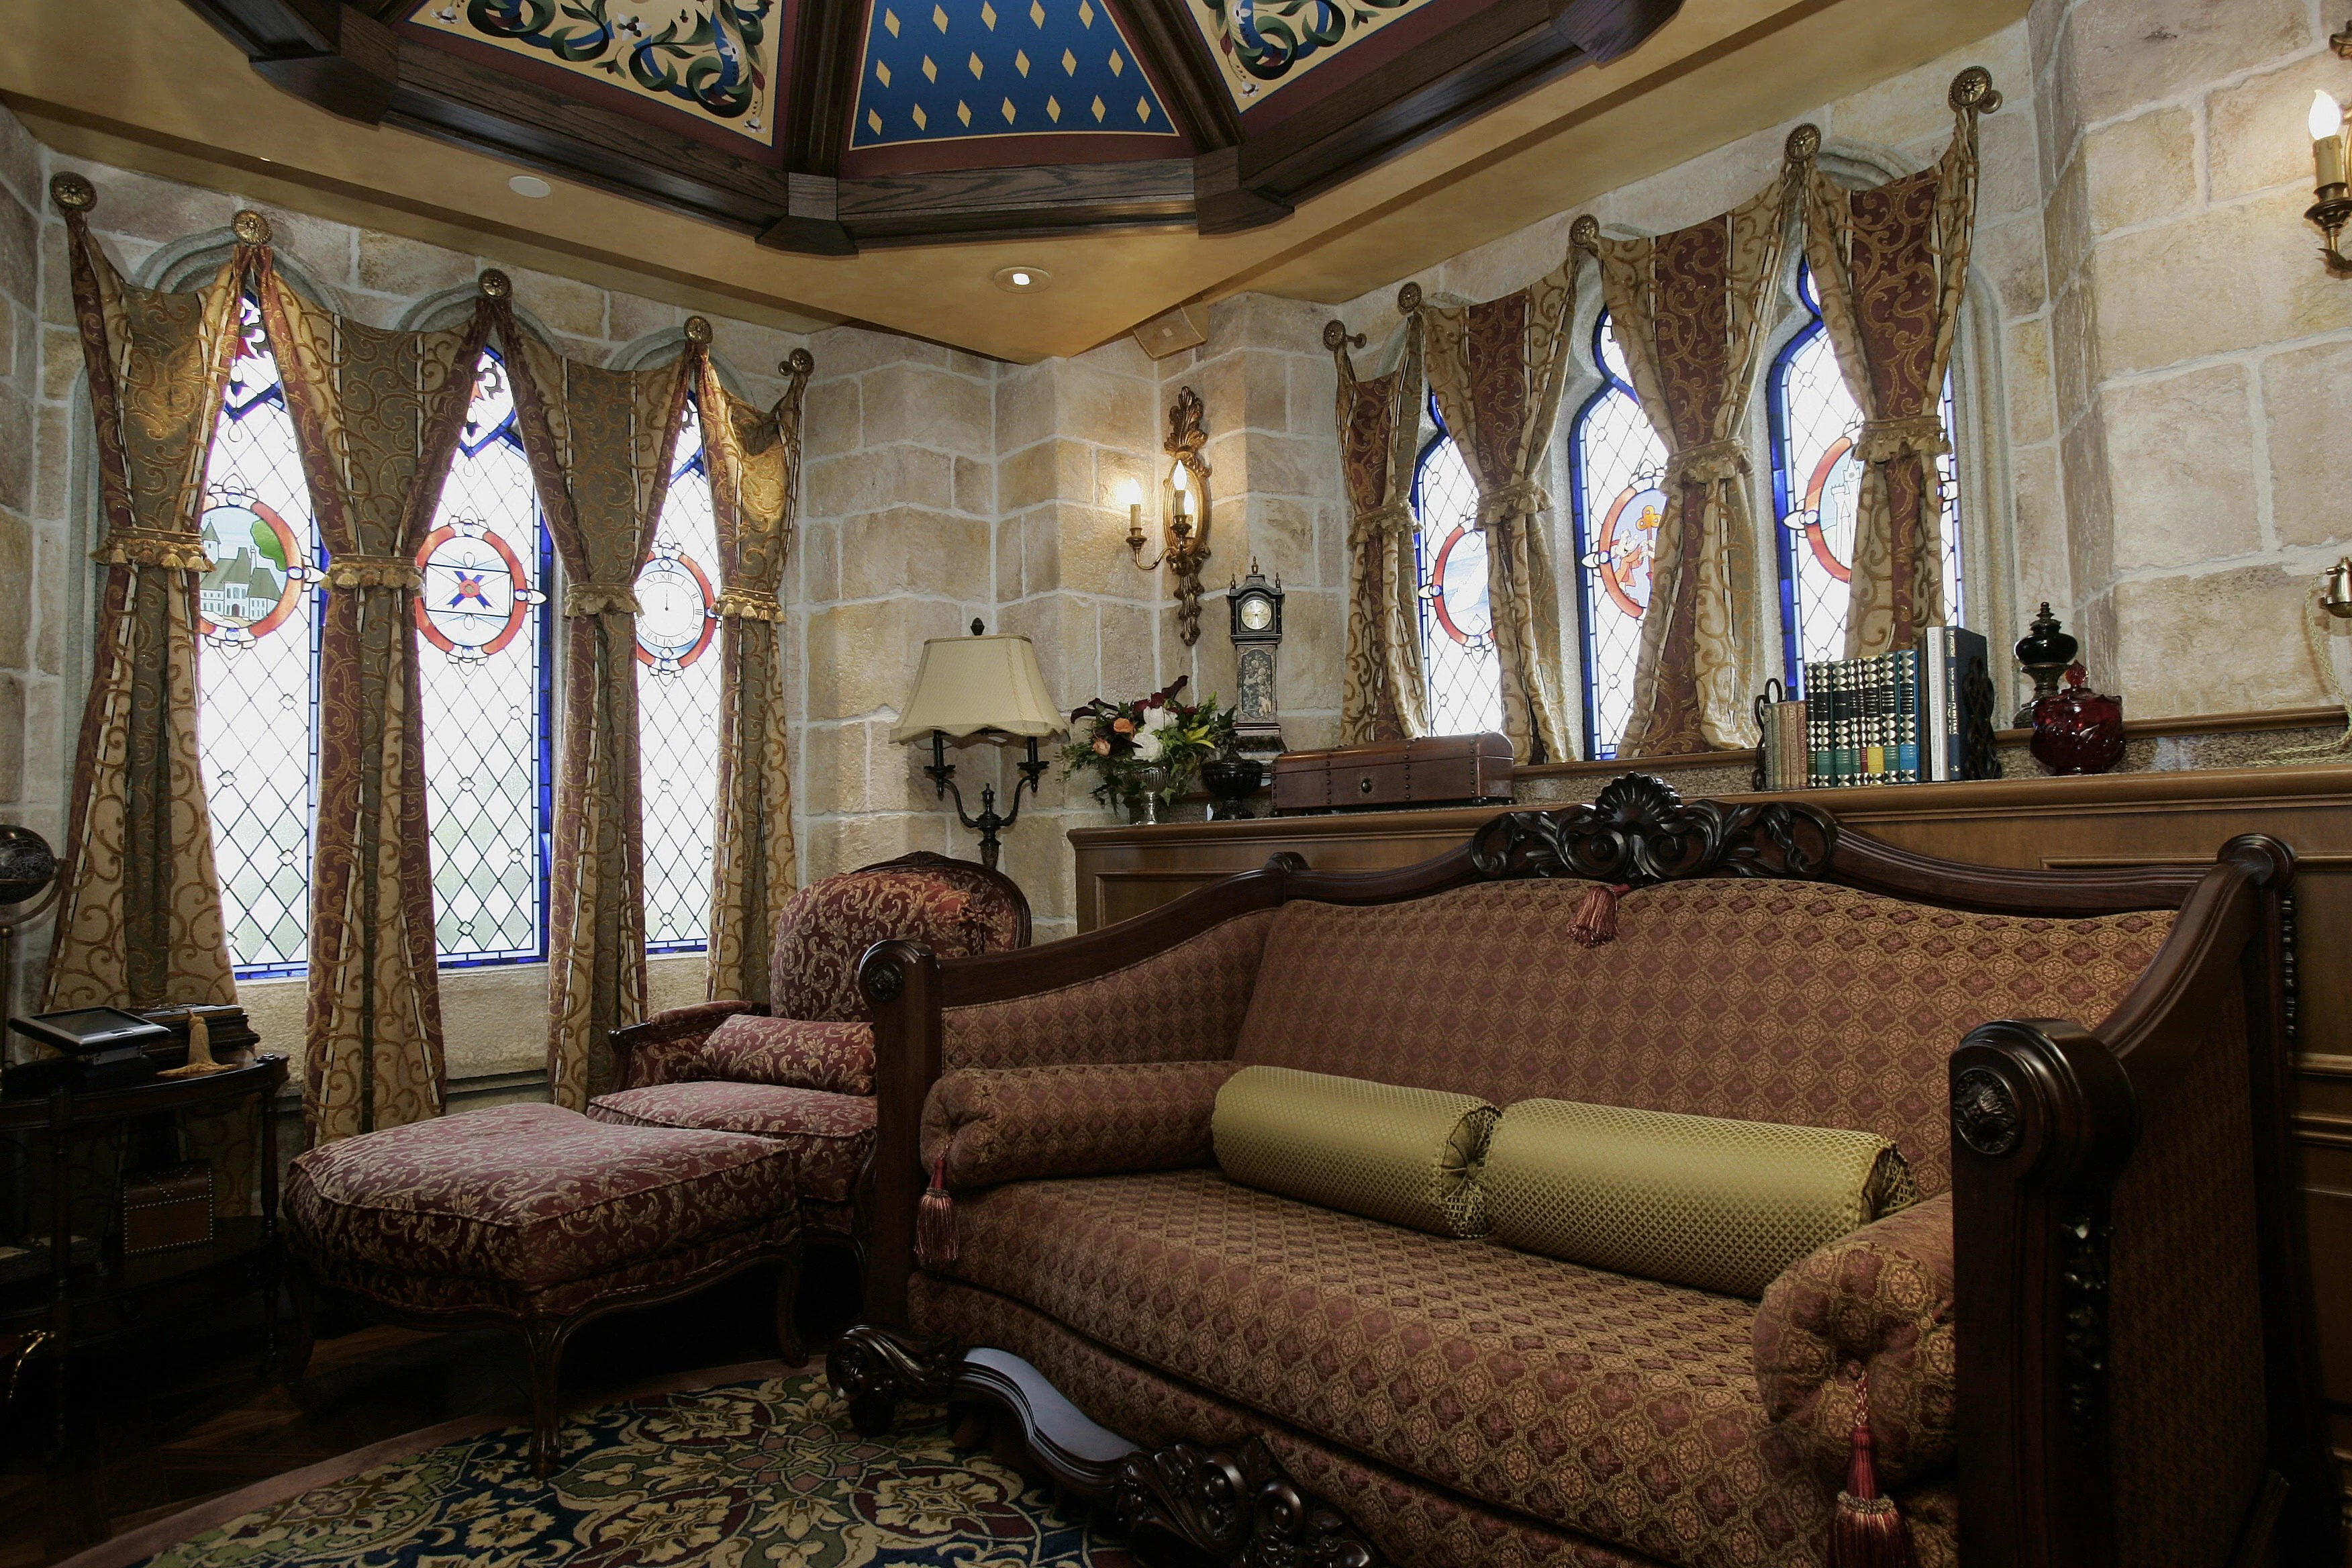 Visit Exclusive Suite in Cinderella Castle on Disney World's New Over-the-Top Private Tour